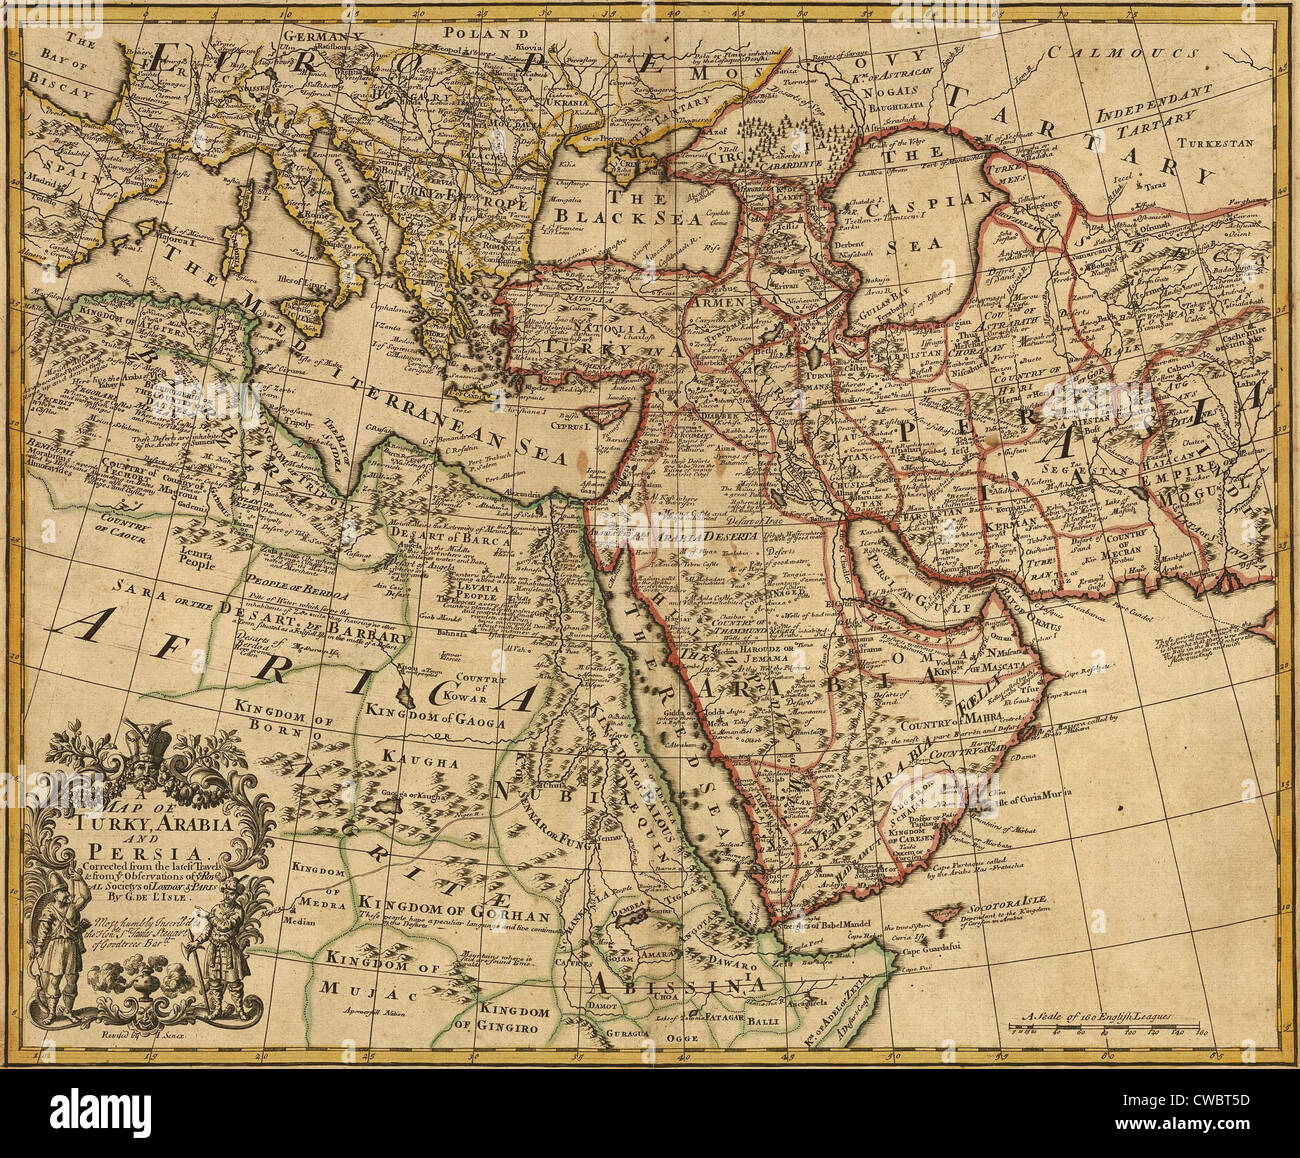 Maps Of Europe Photos Maps Of Europe Images Alamy – Turkey on the Map of Europe